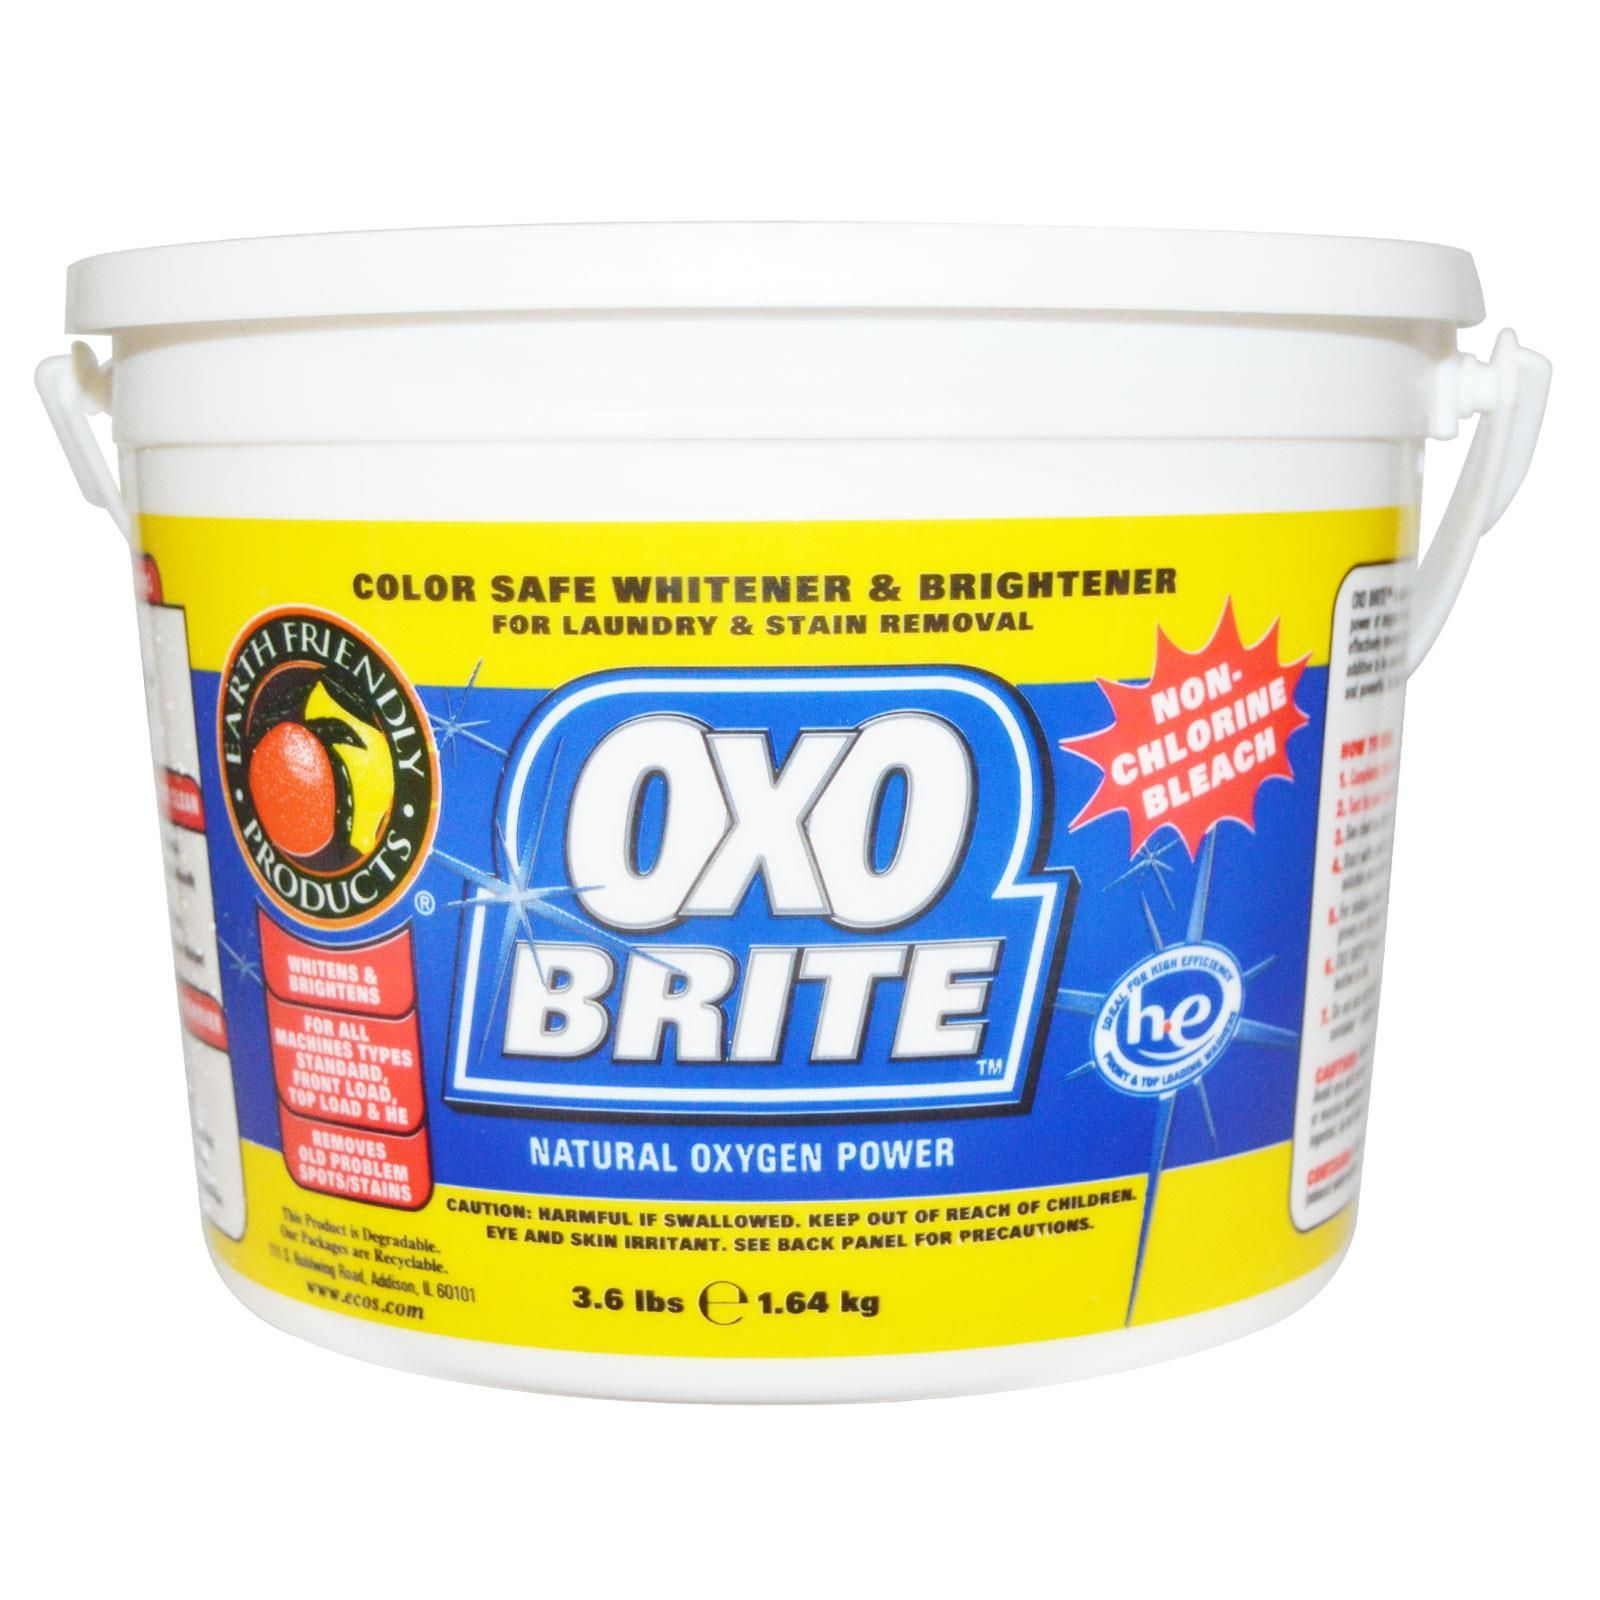 Earth Friendly Products Oxo Brite Natural Oxygen Power 3 6 Lbs 1 64 Kg Natural Cleaning Products Diy Cleaning Products Laundry Stain Remover